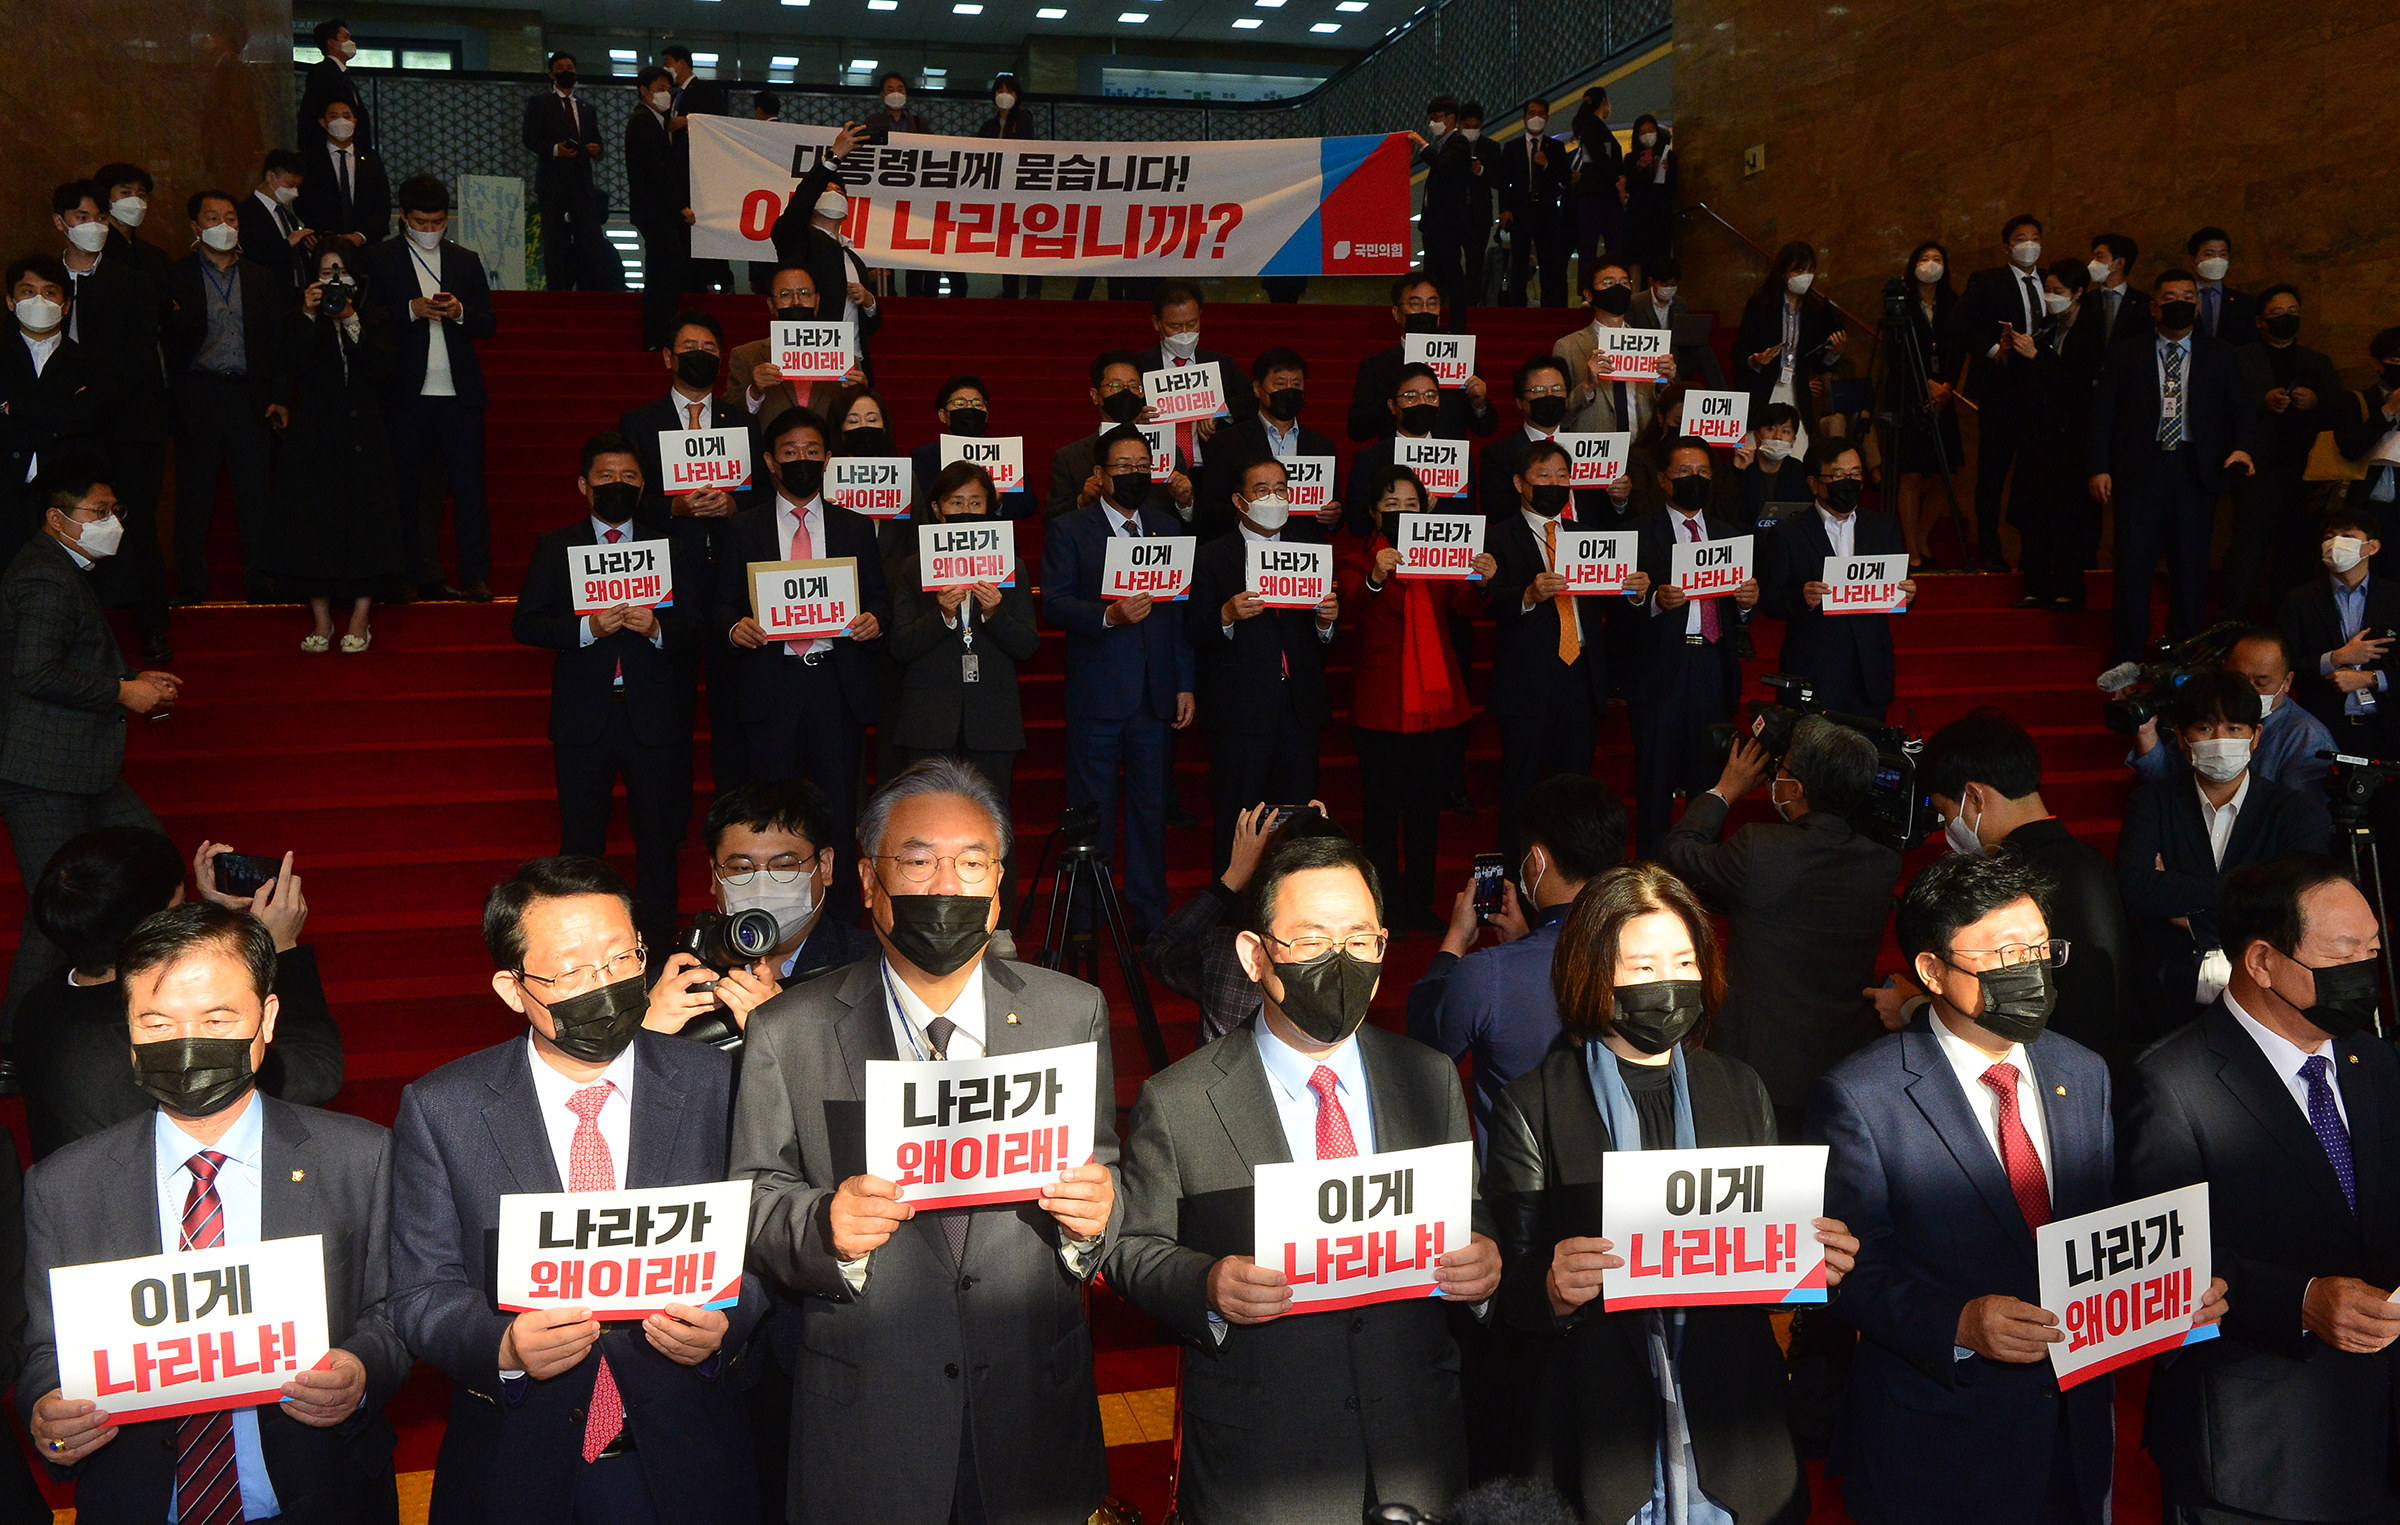 Opposition lawmakers protest against Moon's leadership outside South Korea's National Assembly on Oct. 28, 2020.